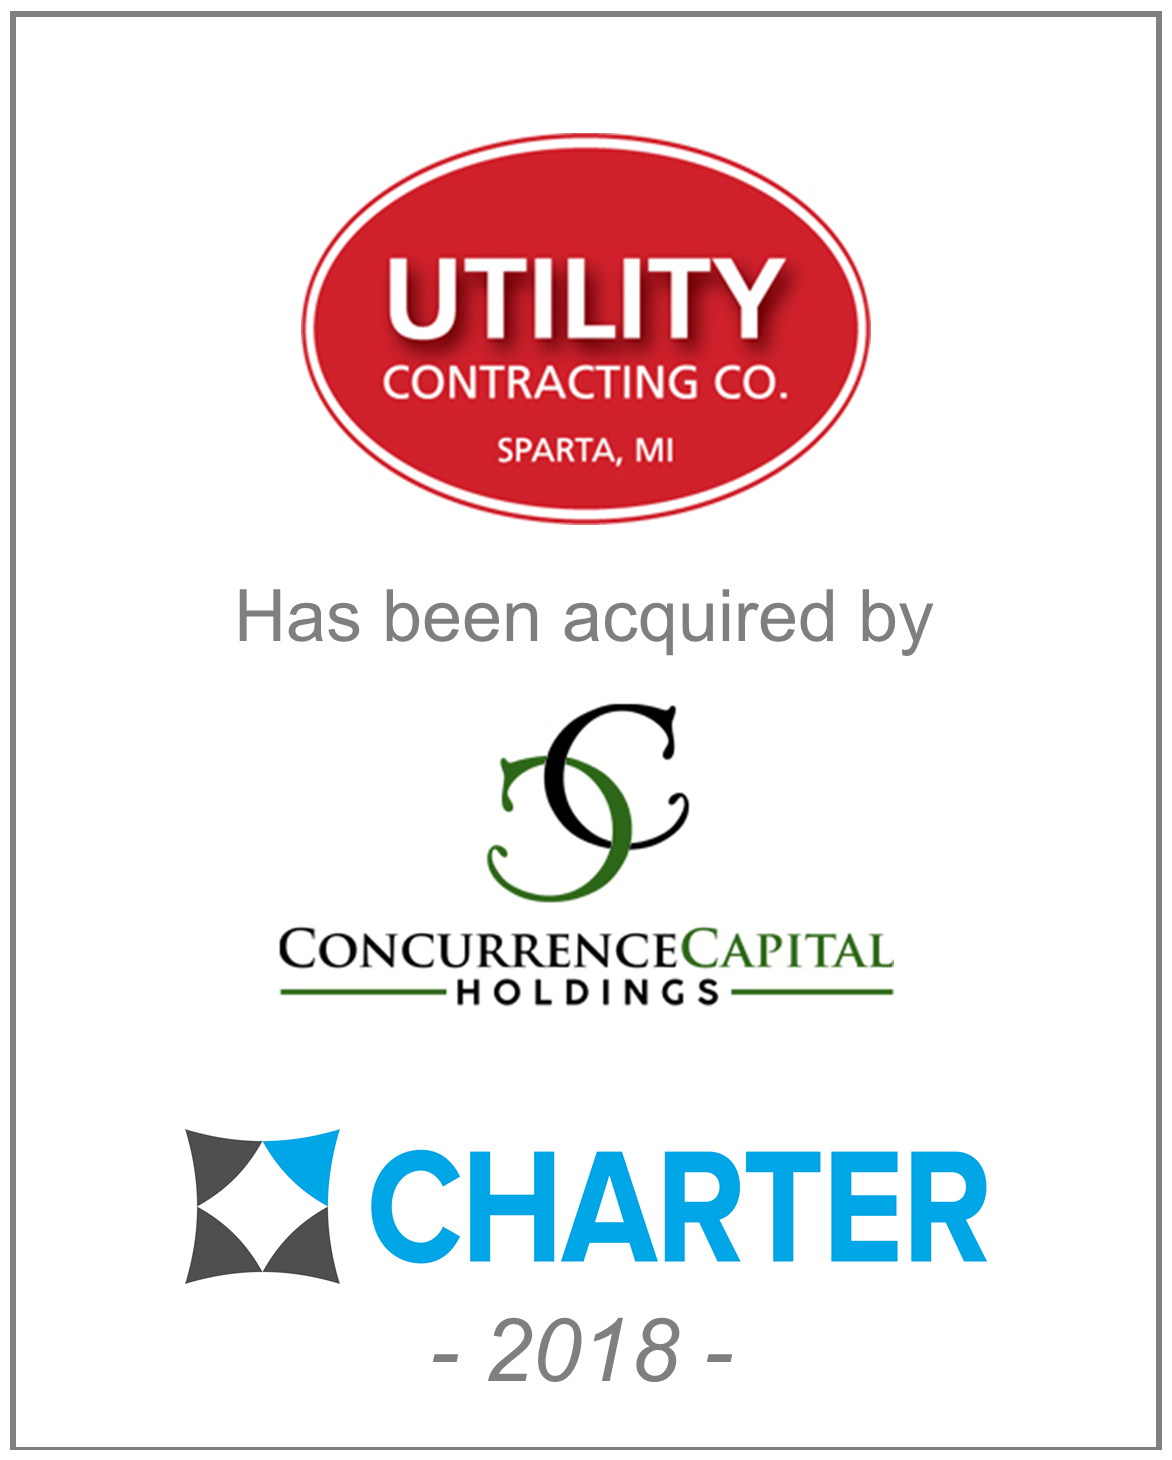 utilitycontracting.png